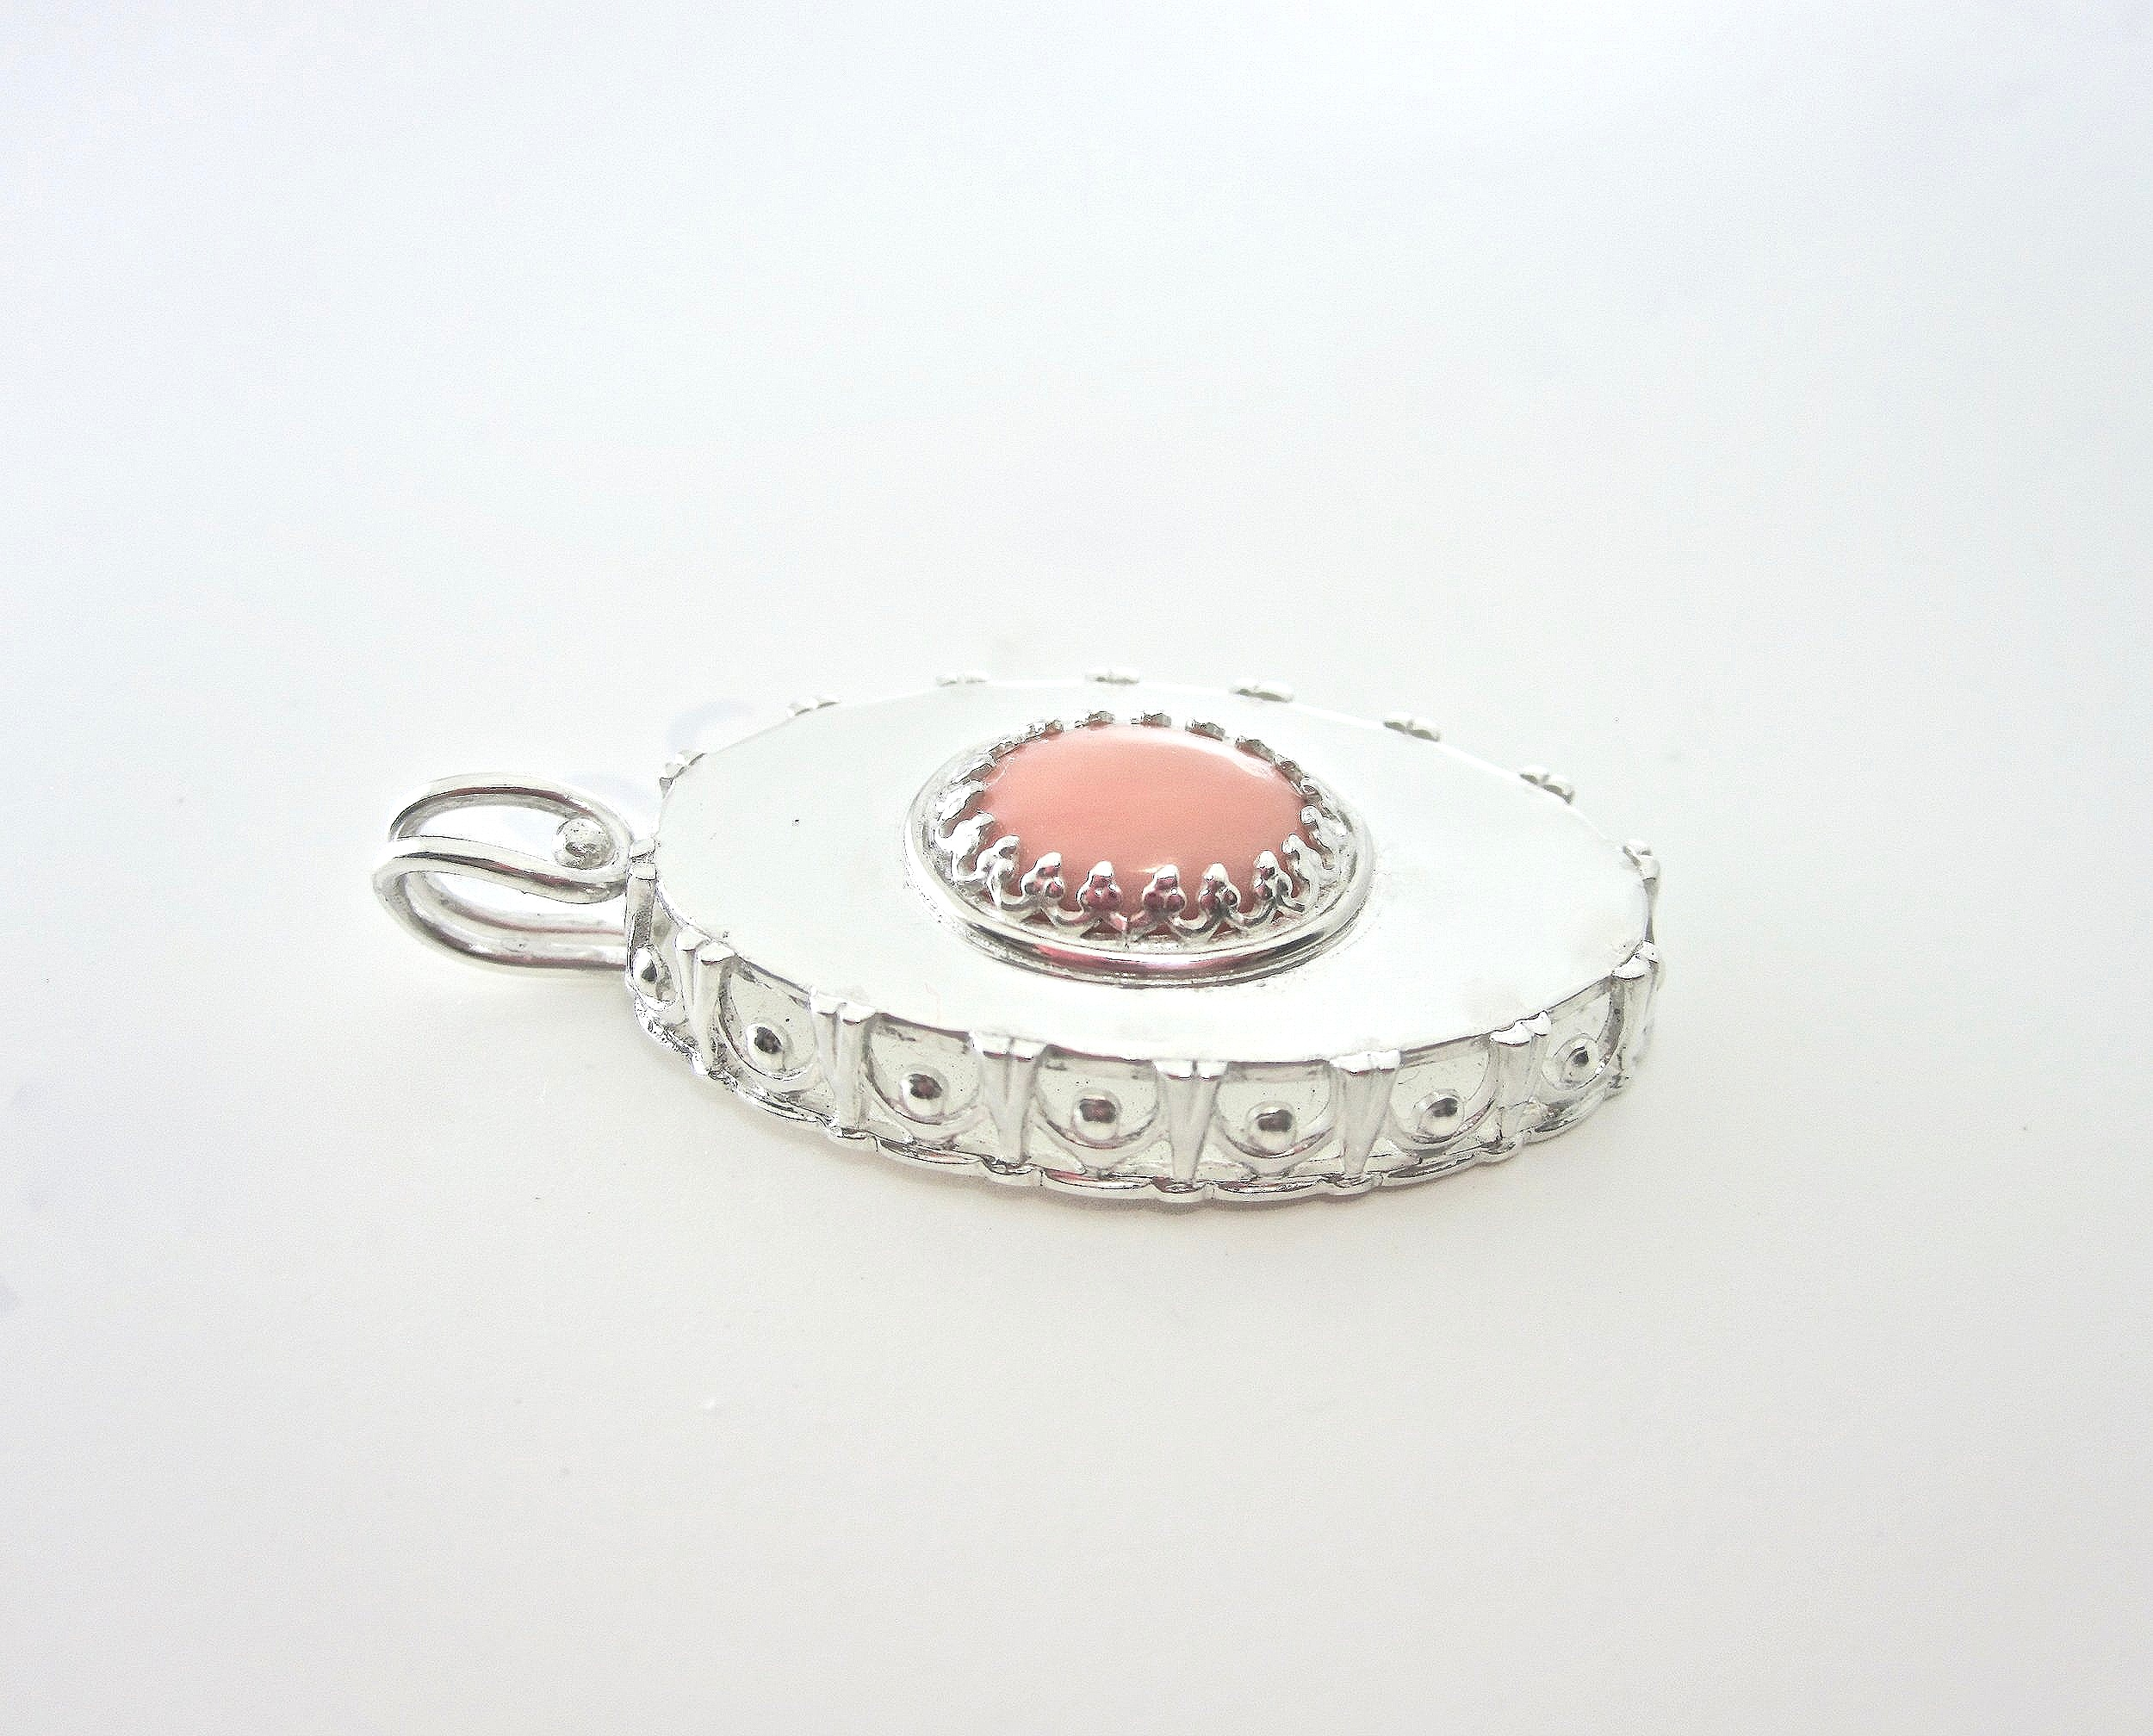 Silver open sided oval box pendant